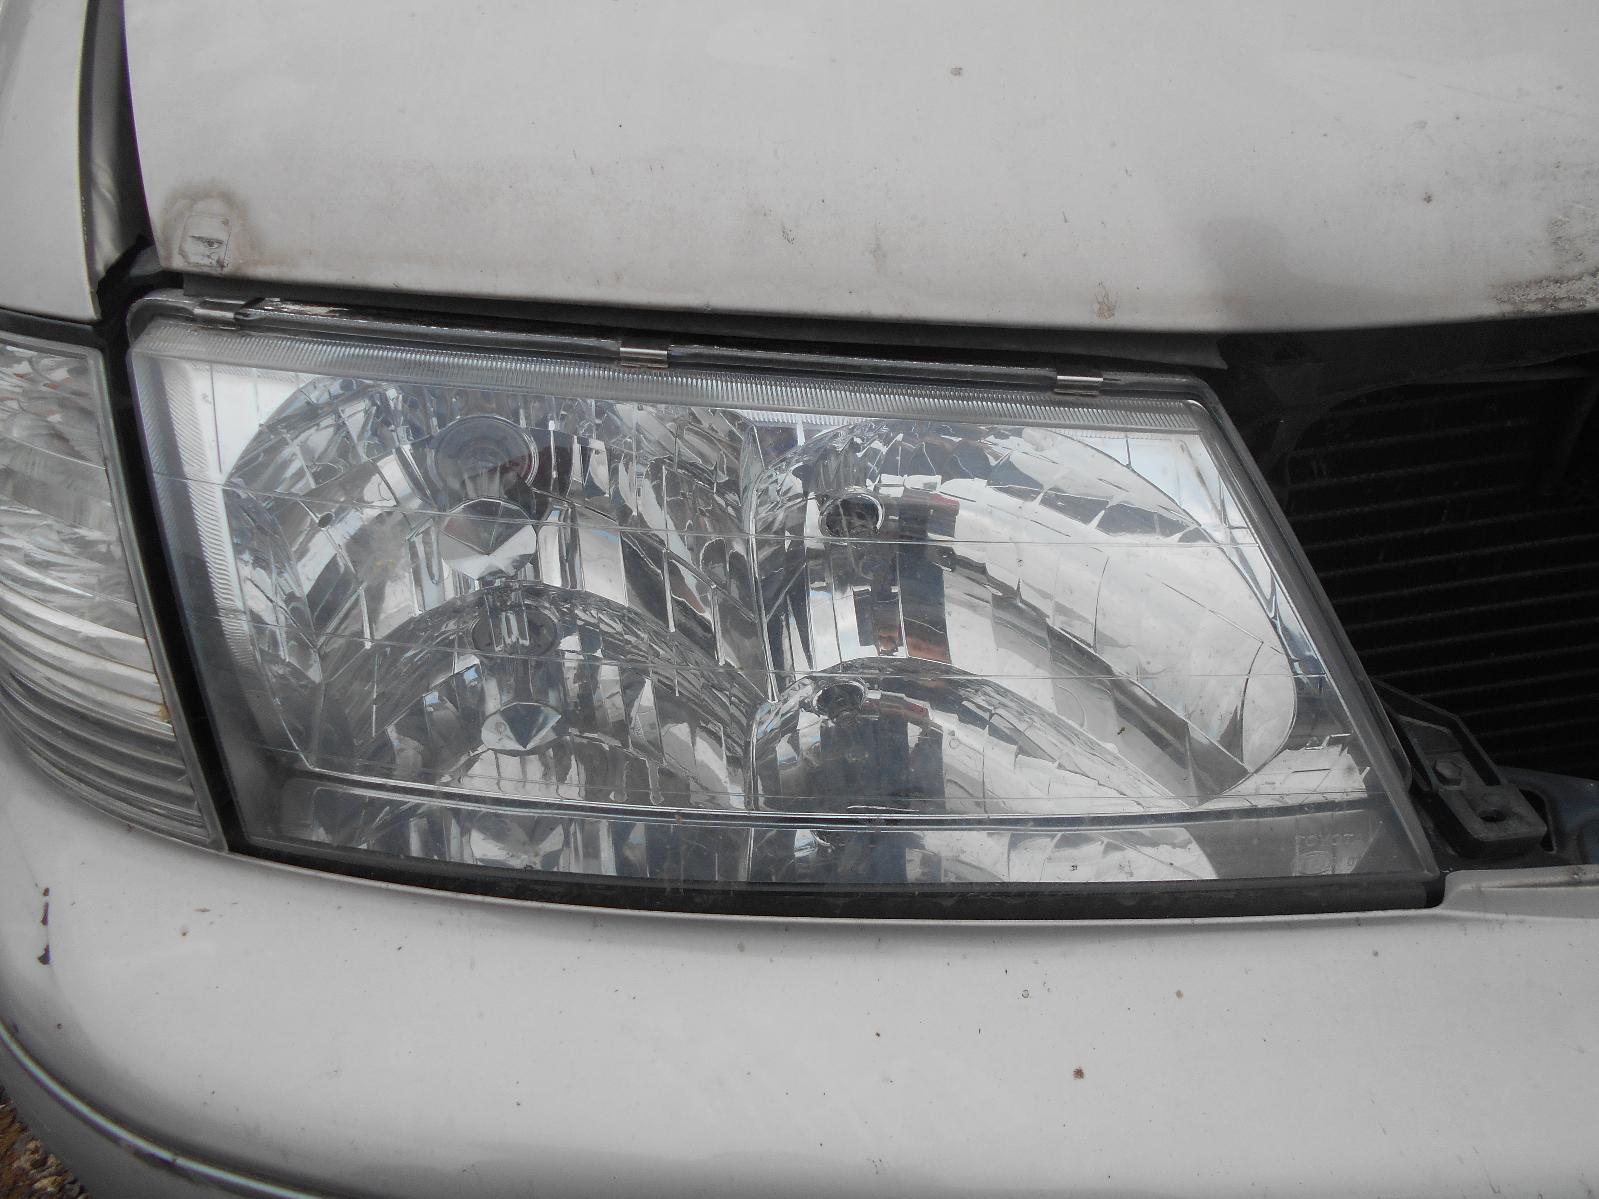 TOYOTA AVALON, Right Headlamp, MCX10R, HELLA LENS# 07-29, 07/00-09/03